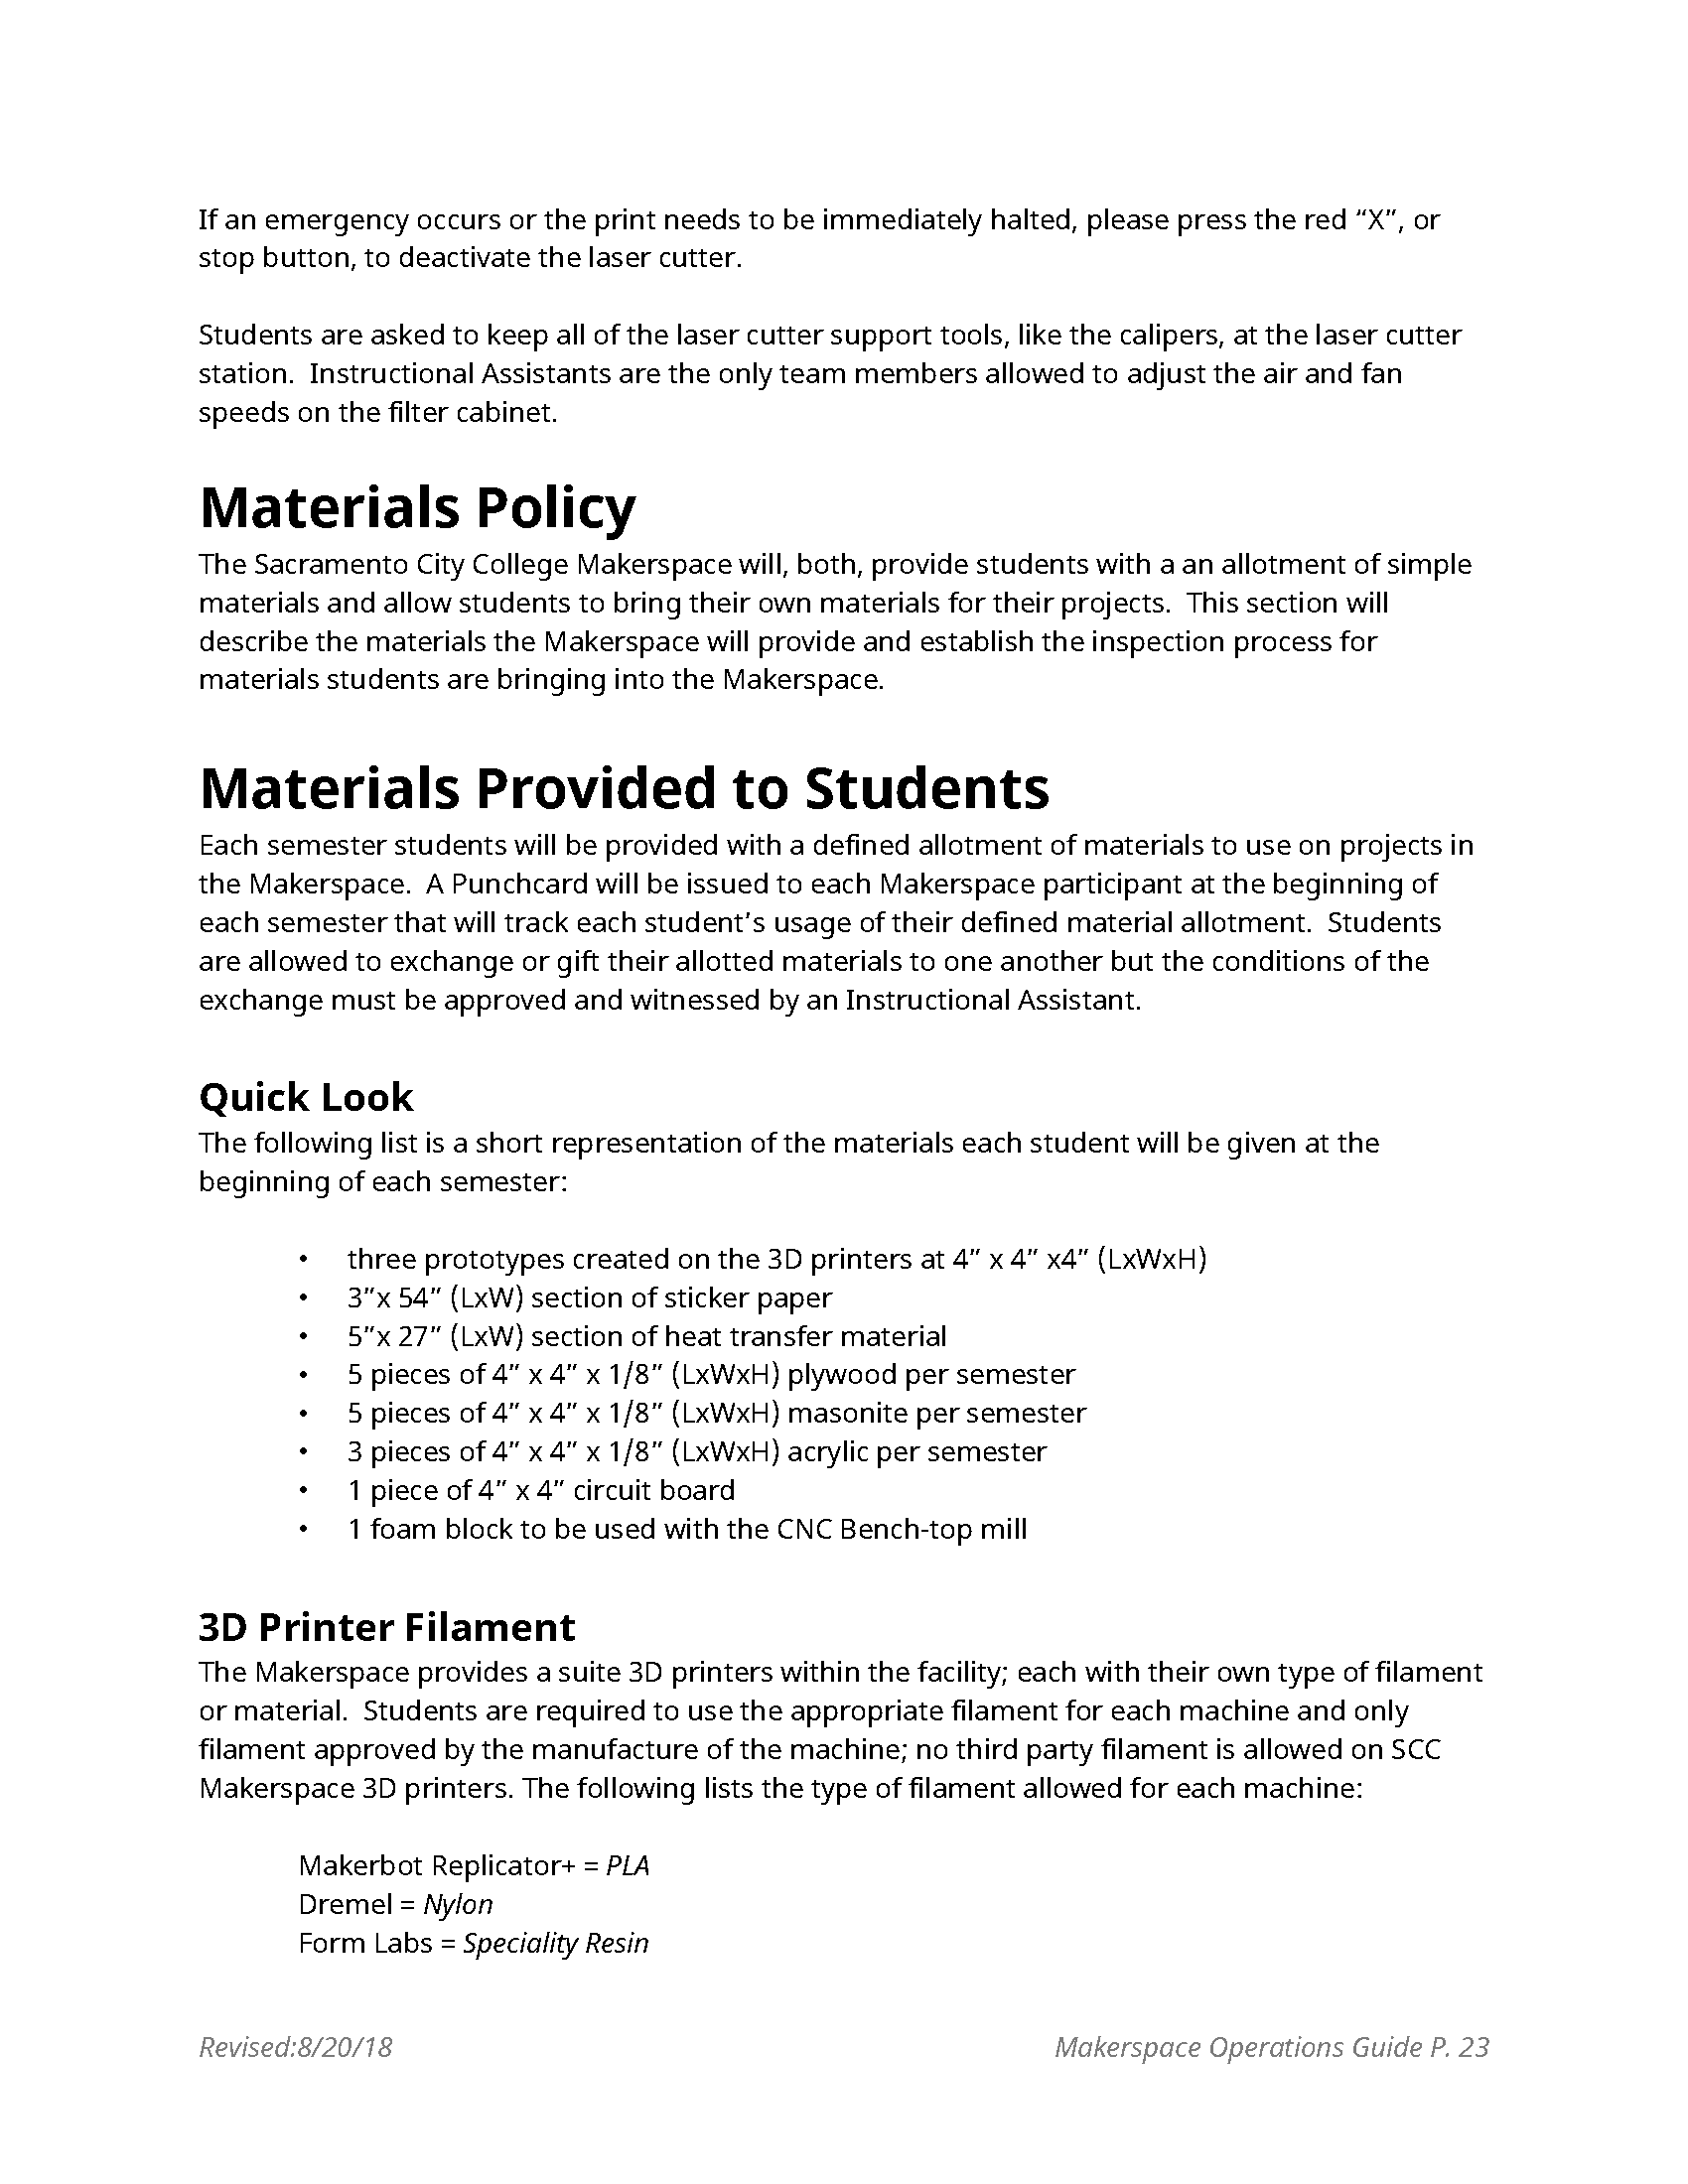 ms_ops_manual_8-20_Page_23.png